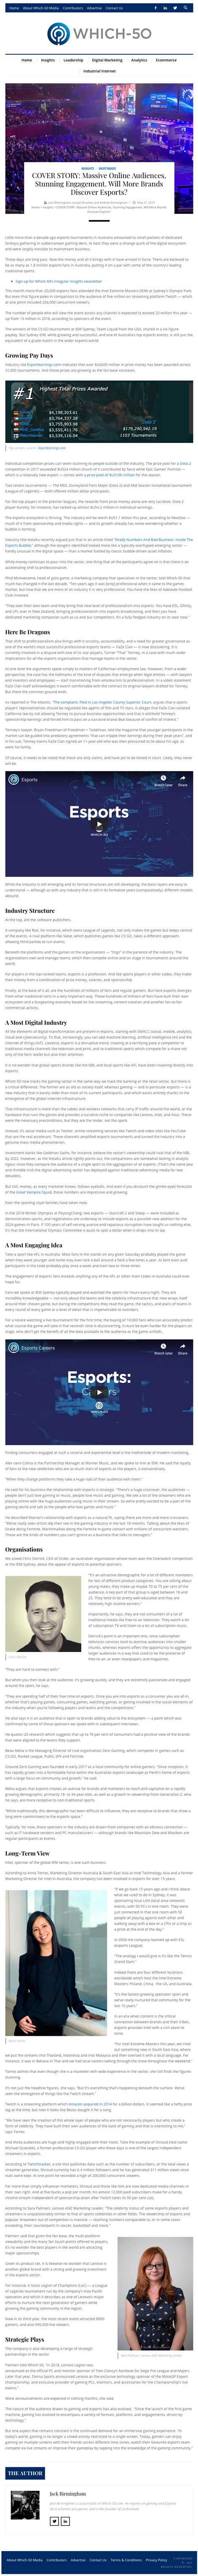 COVER STORY: Massive Online Audiences, Stunning Engagement. Will More Brands Discover Esports? - article by which-50.com